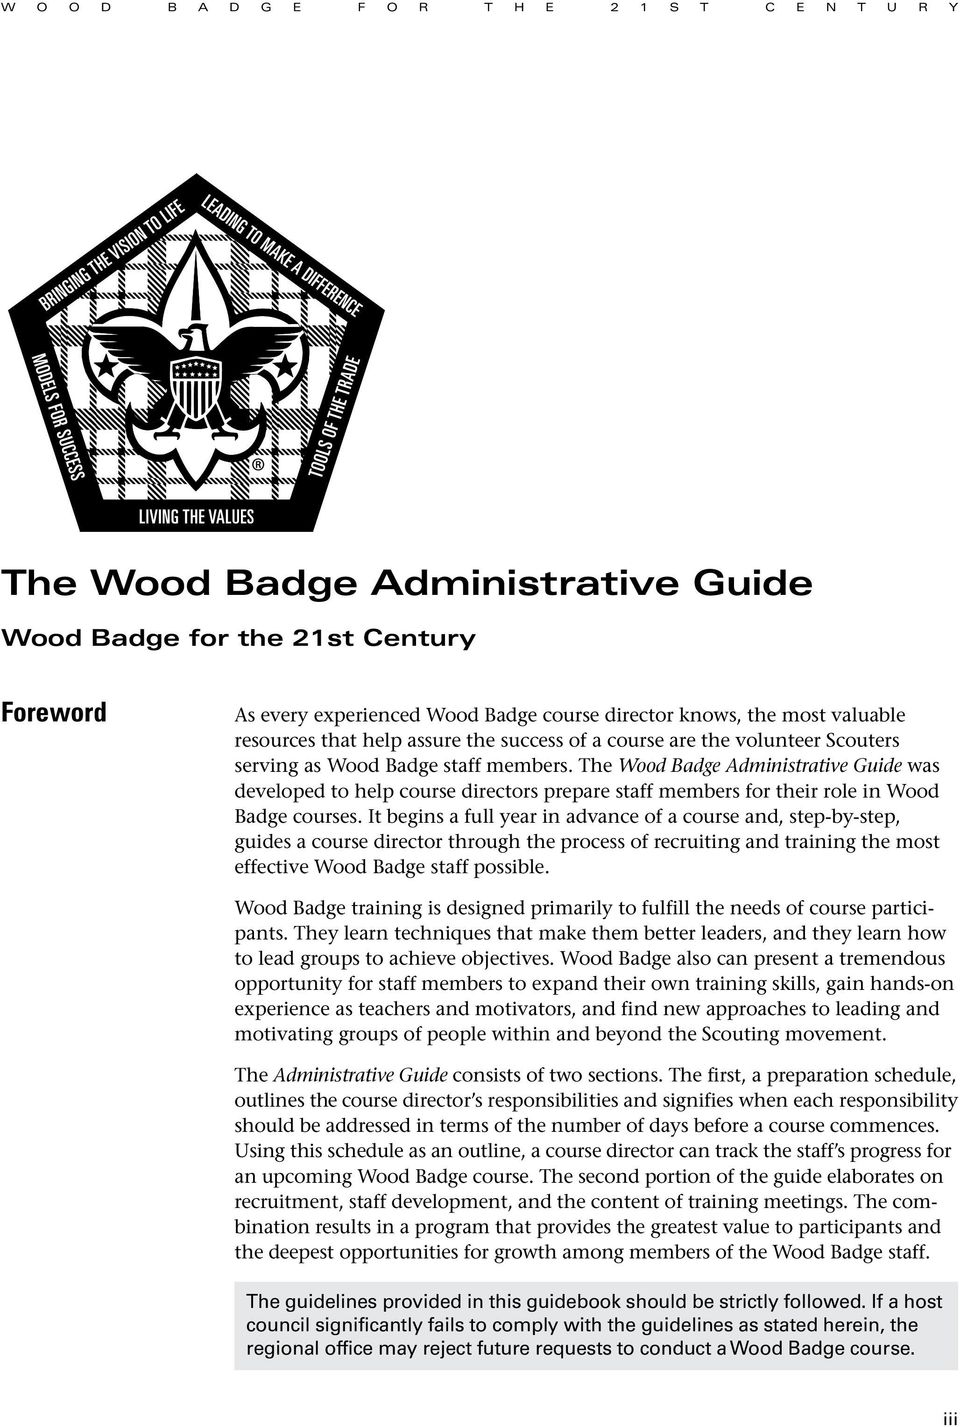 The Wood Badge Administrative Guide was developed to help course directors prepare staff members for their role in Wood Badge courses.